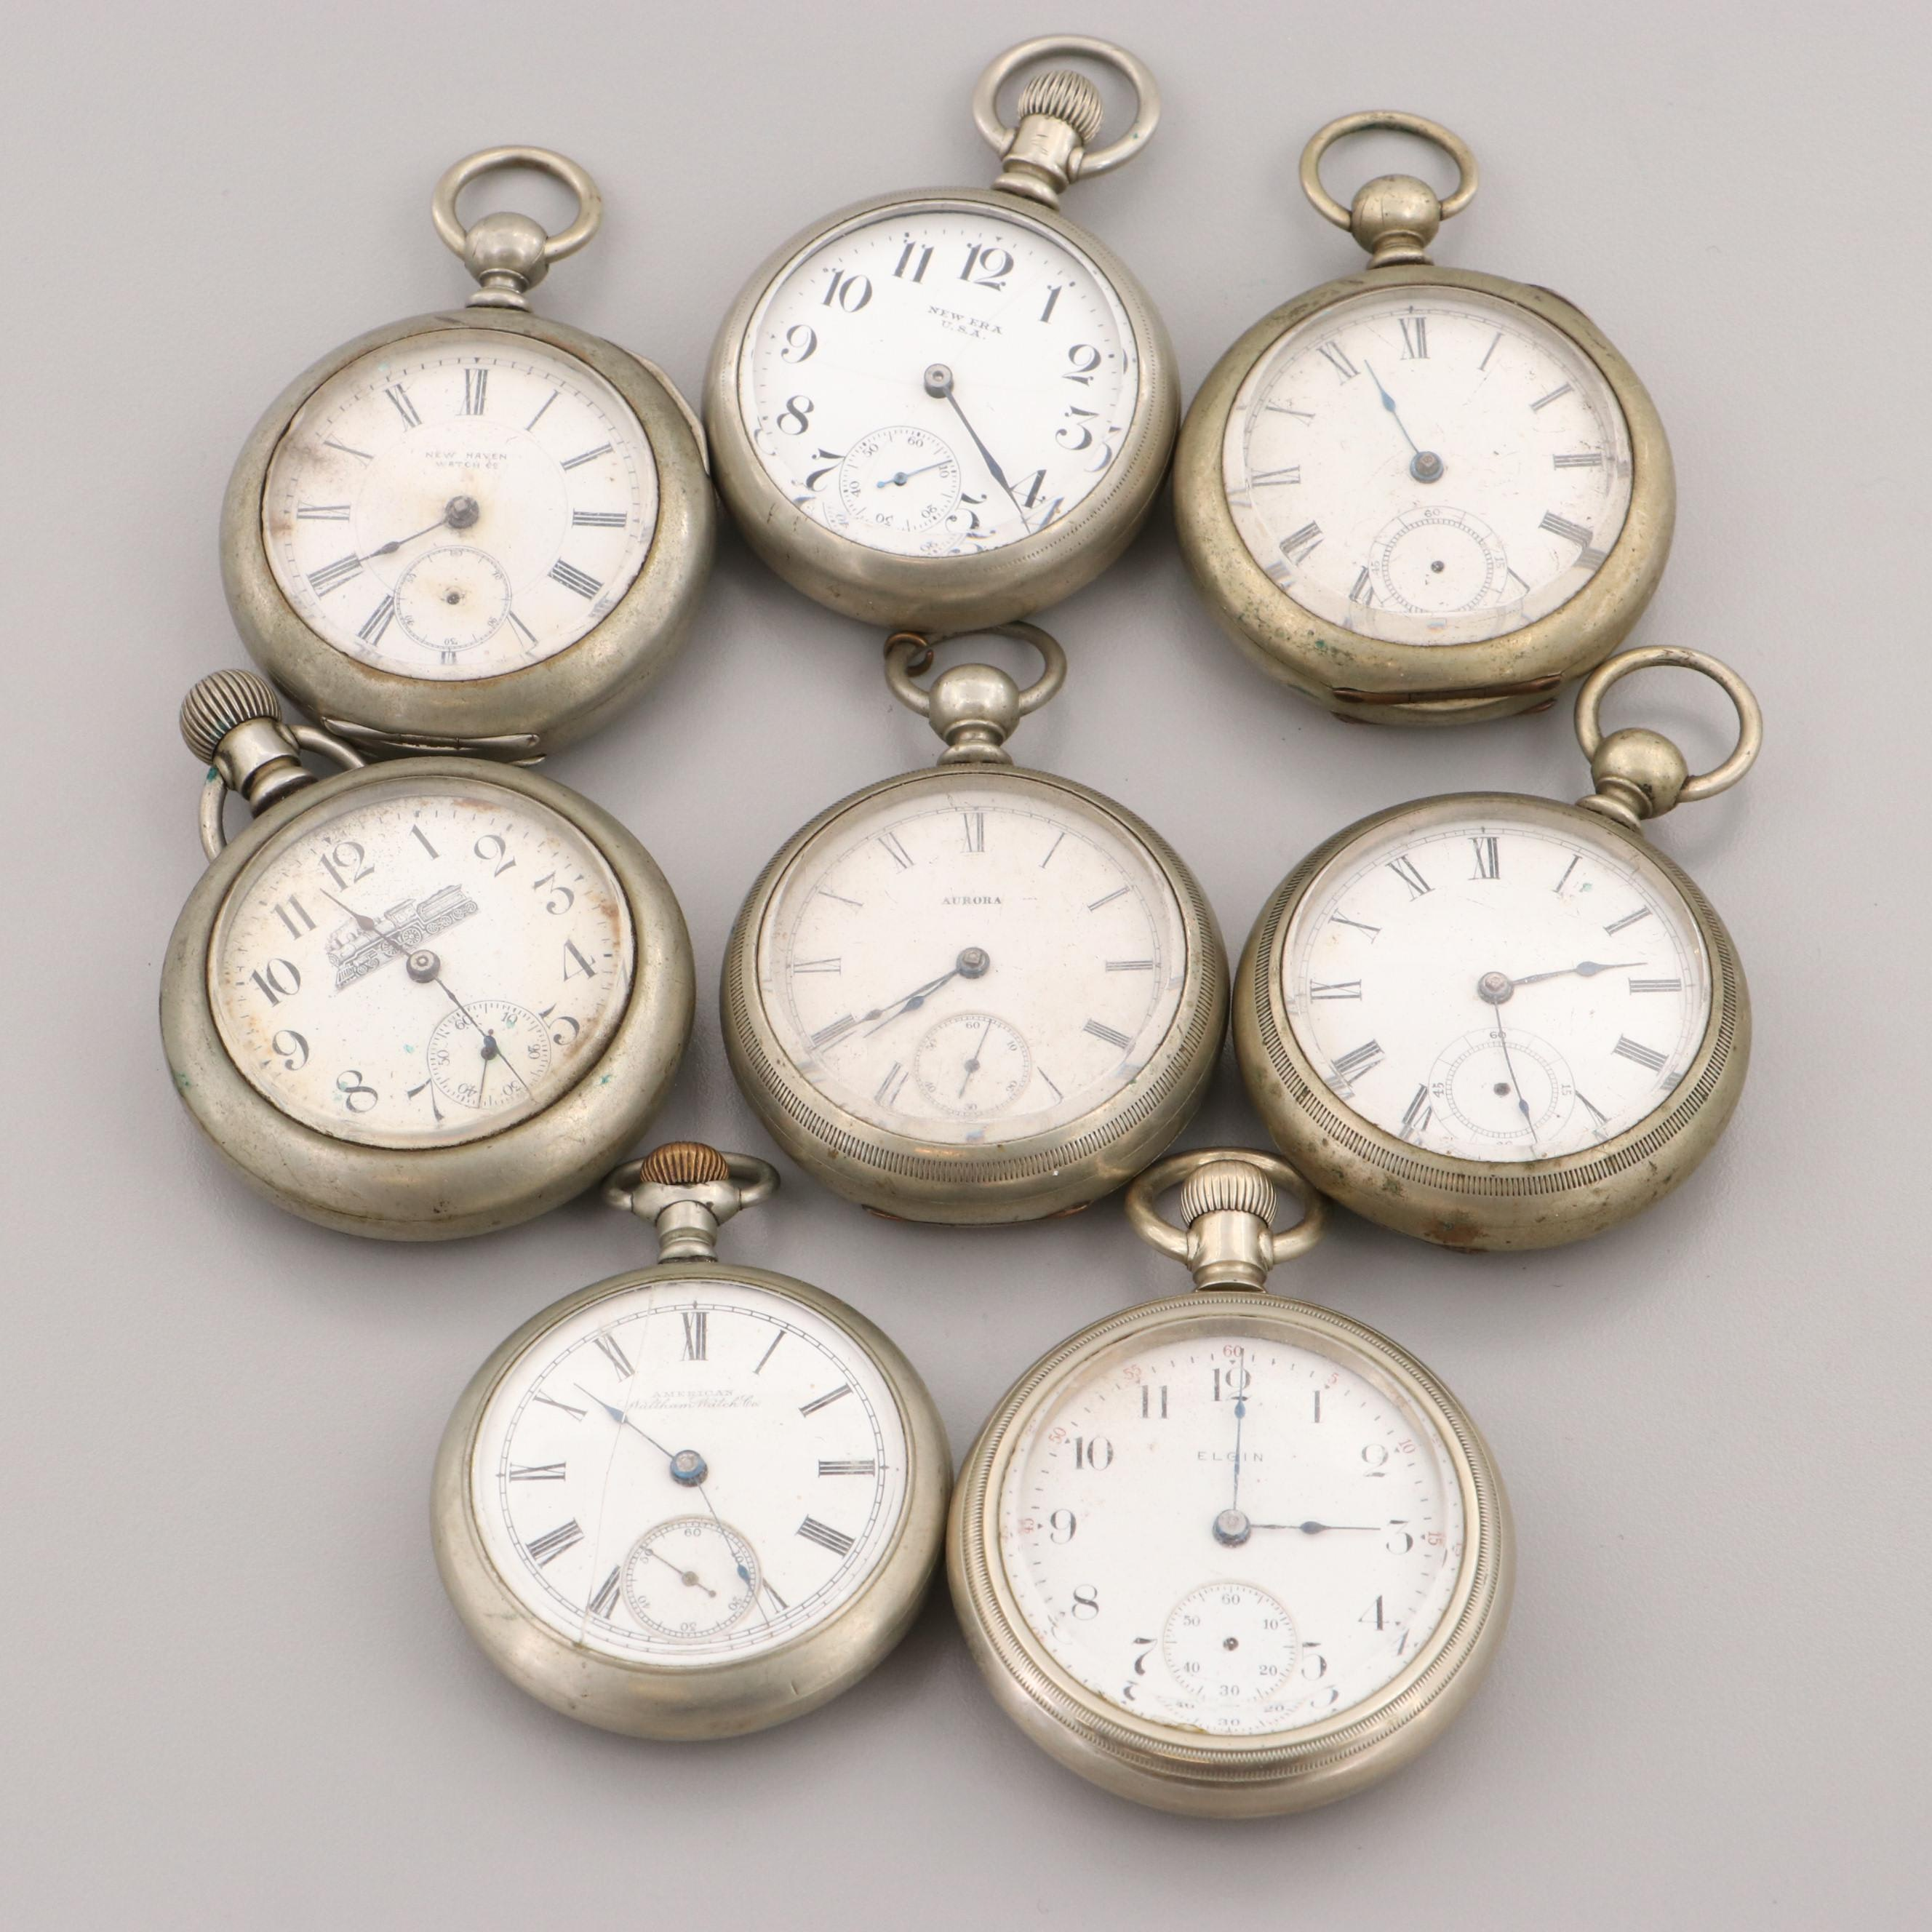 Assortment of Nickel Open Face Pocket Watches Featuring New Haven and Elgin